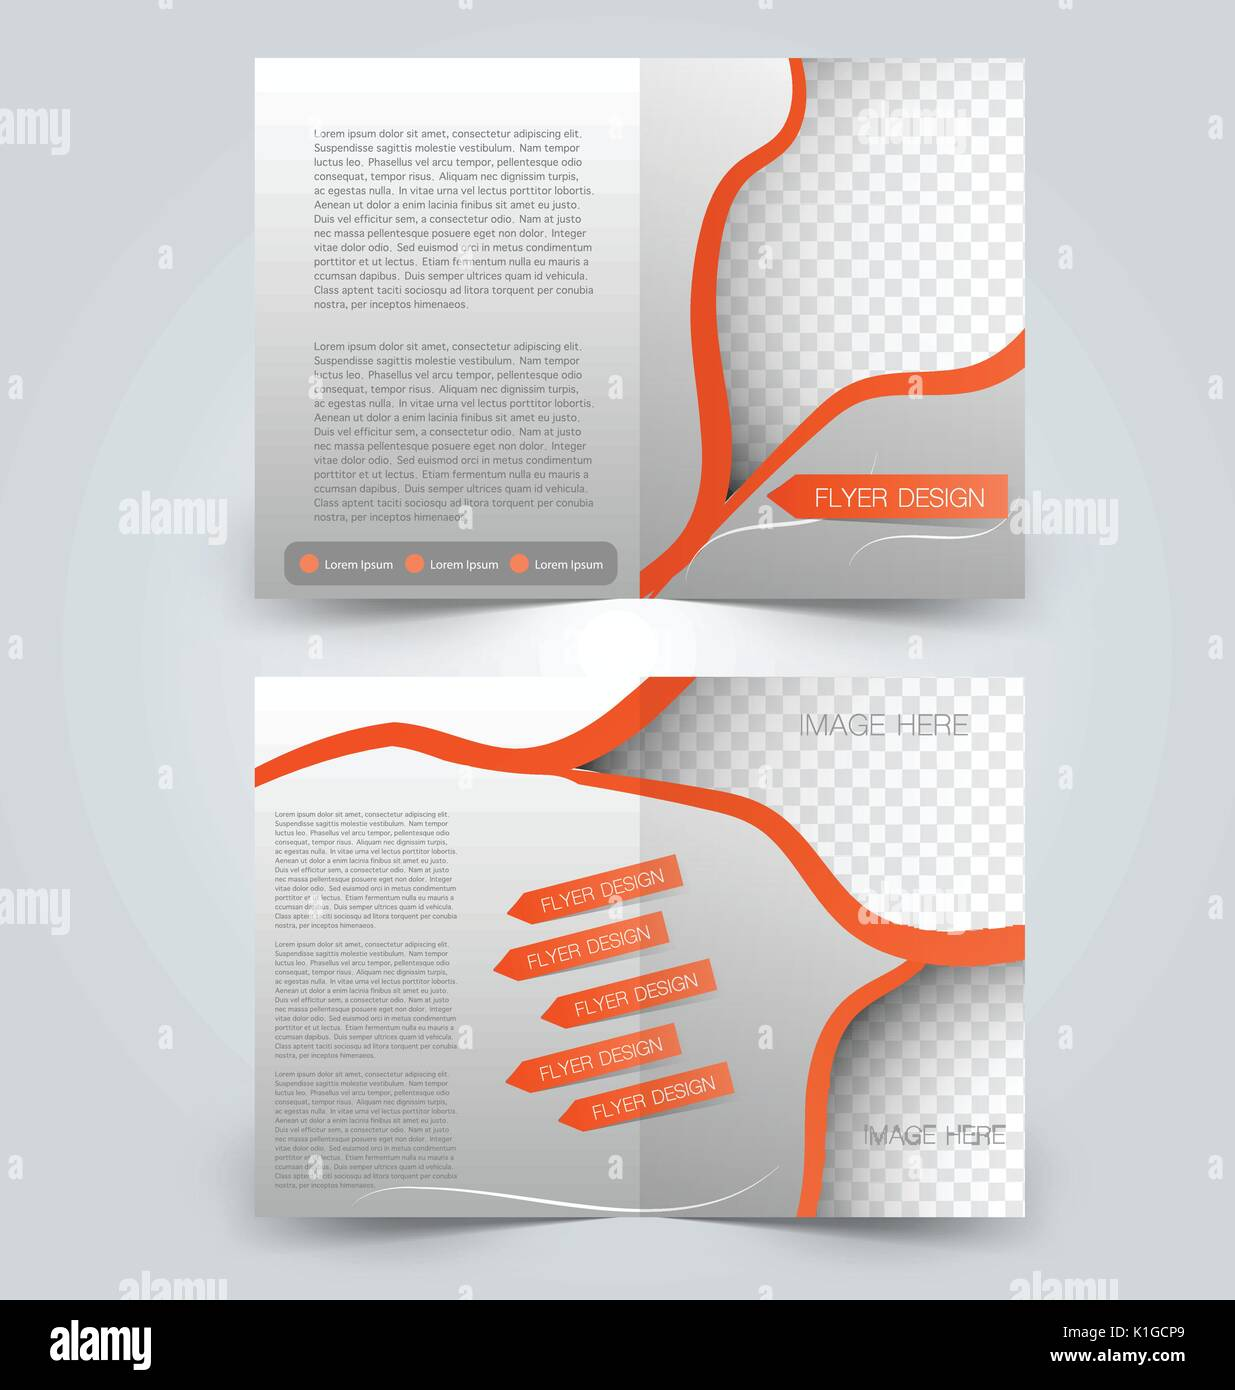 Brochure Front Page Stock Photos Brochure Front Page Stock - Two page brochure template